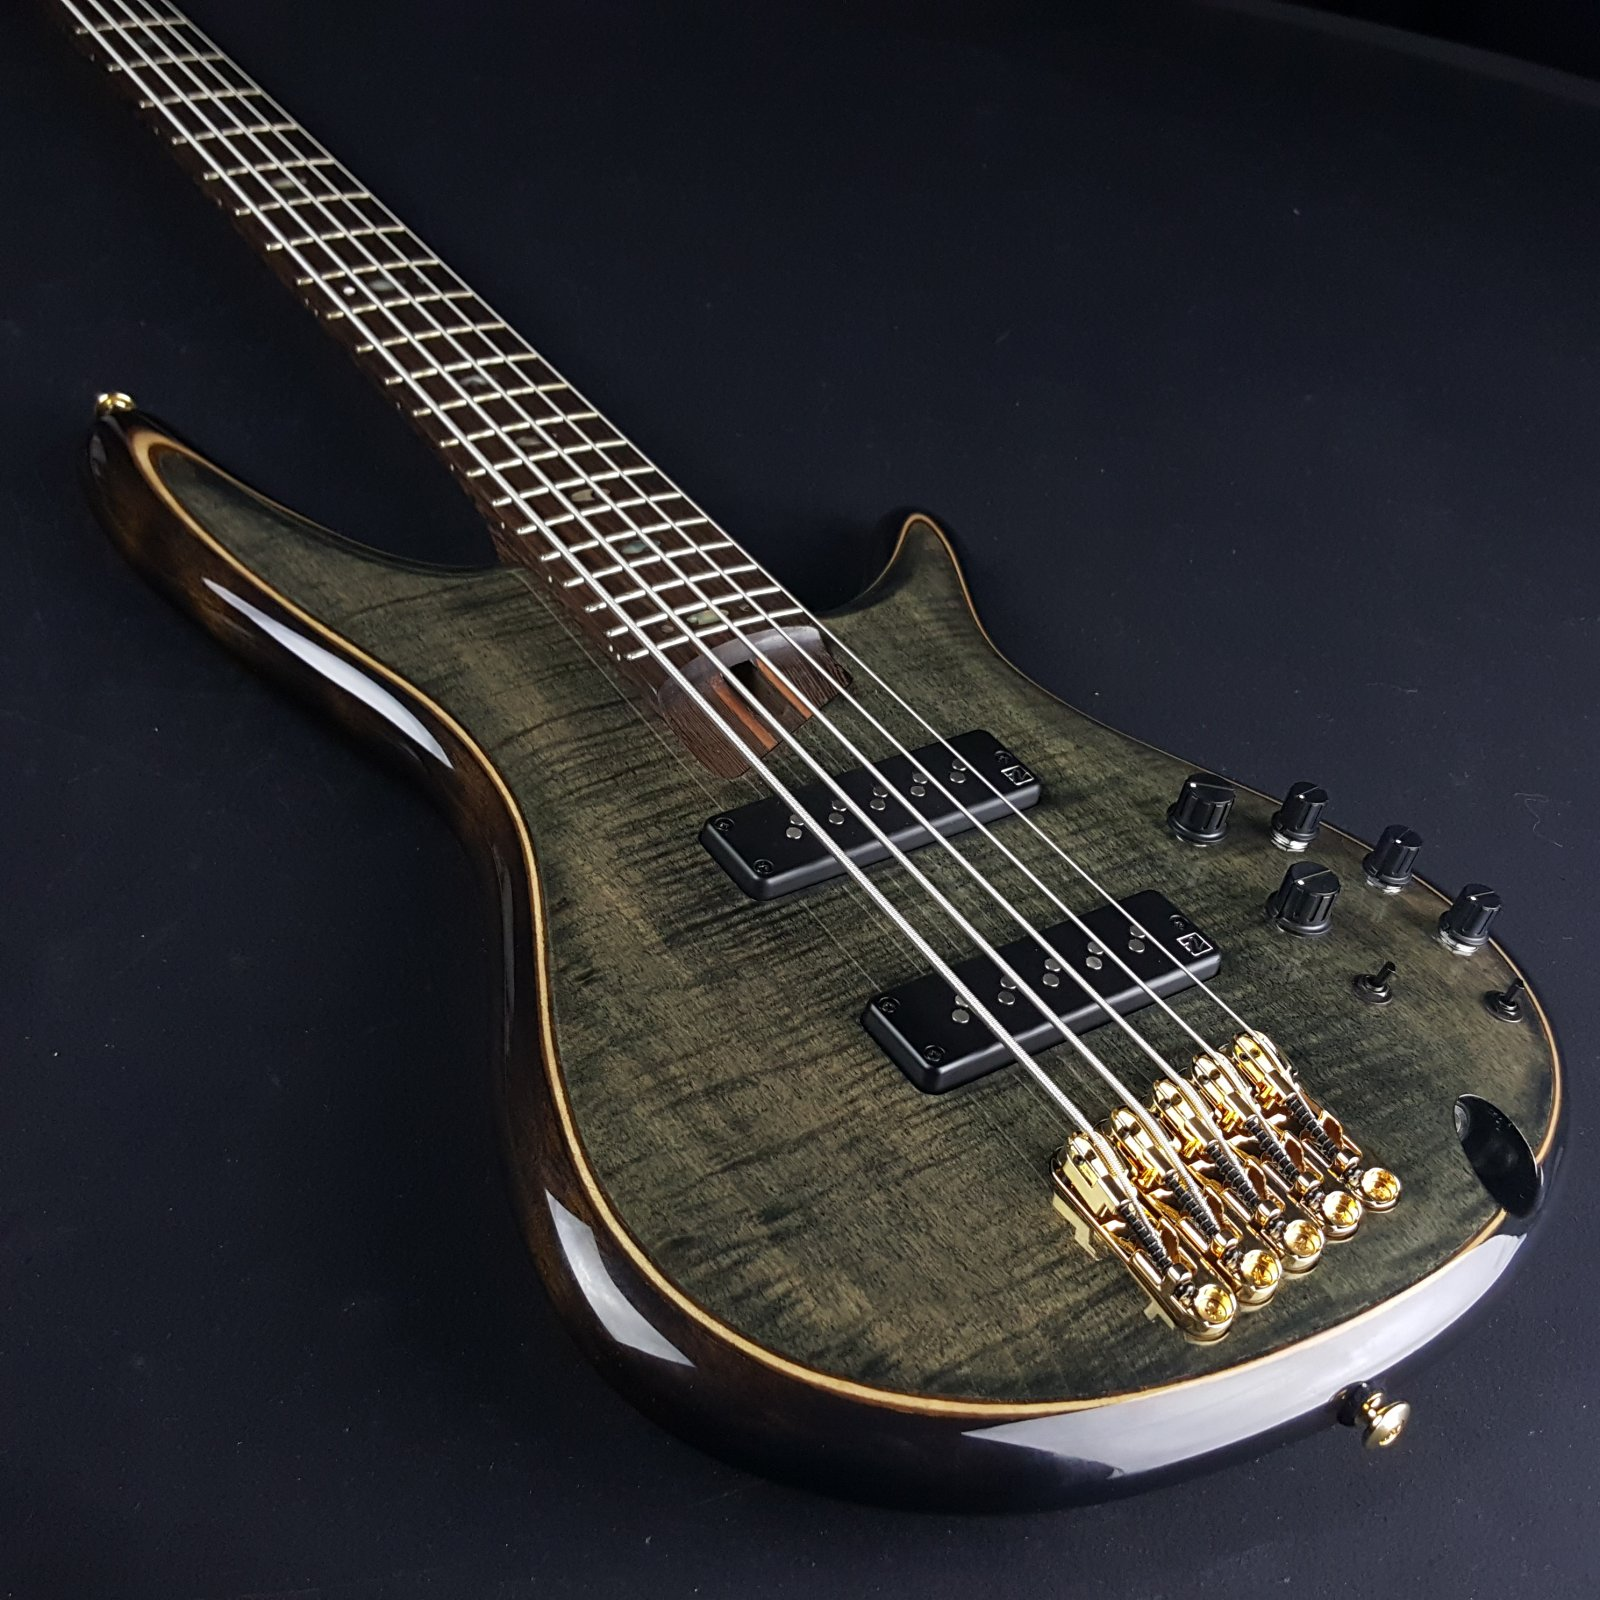 Ibanez SR1405TGK 5 String Bass Transparent Gray Black With Bag